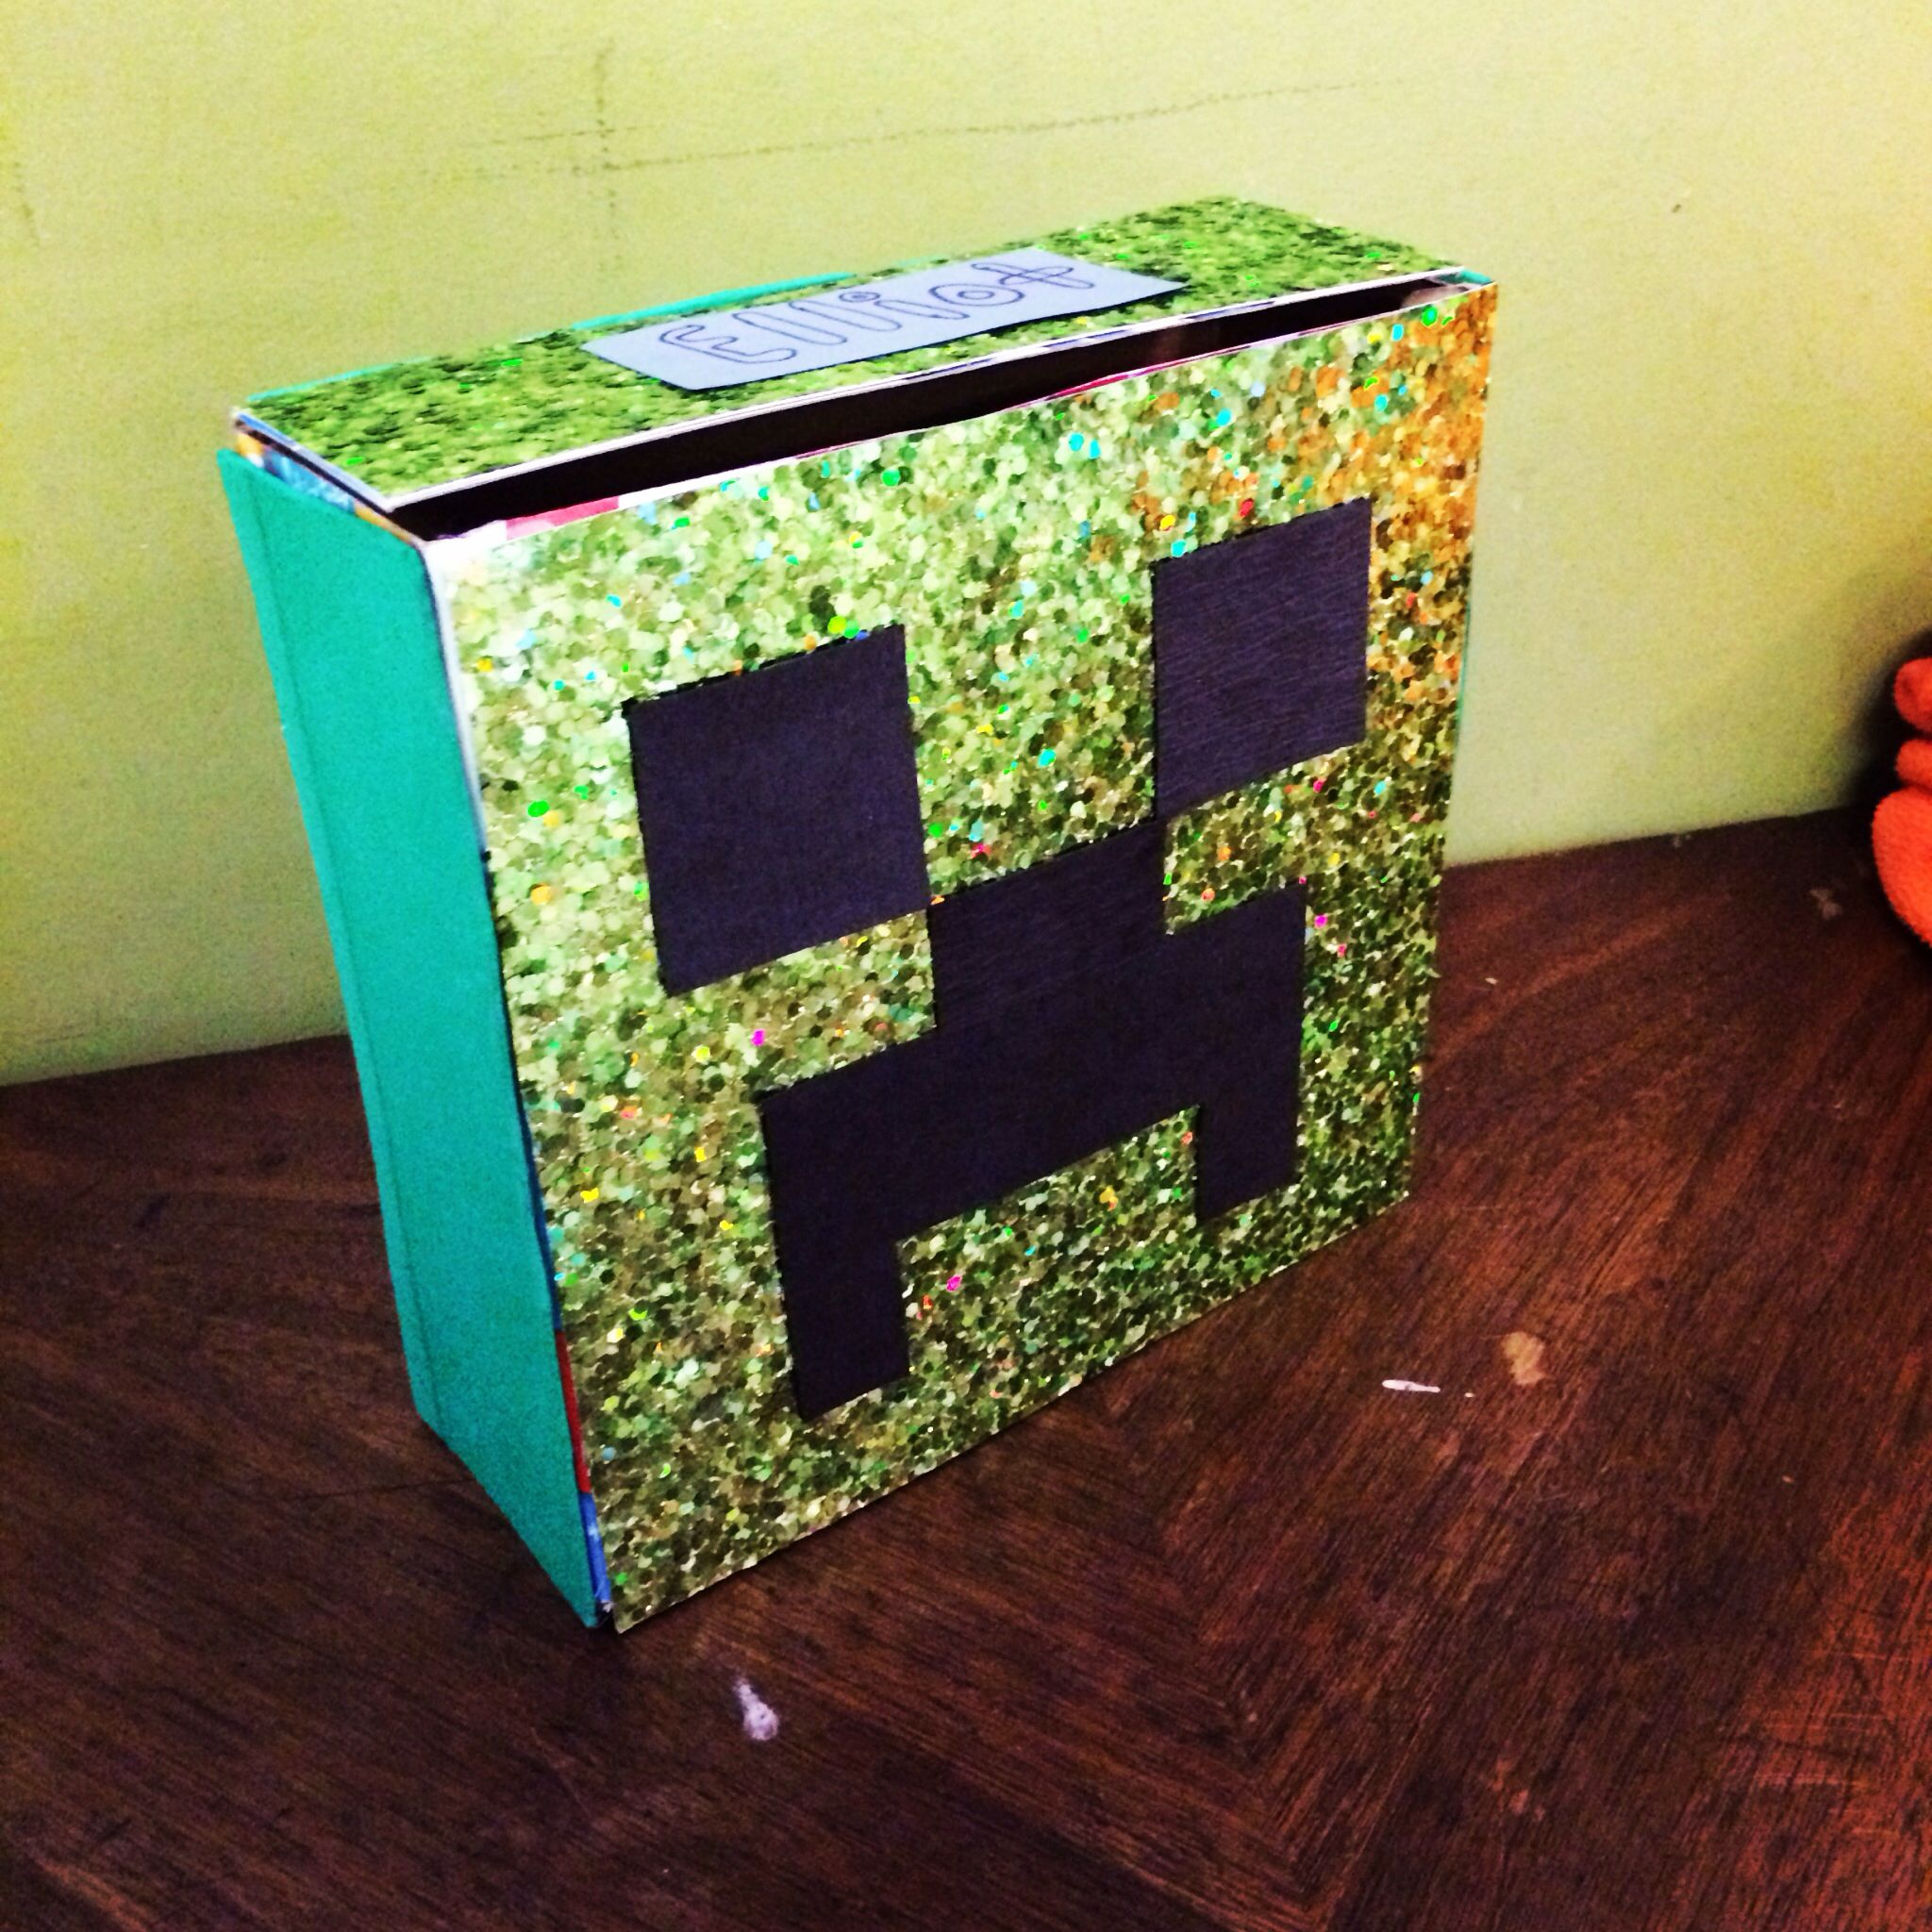 Valentines Day card box  Minecraft Creeper Cereal box cut down